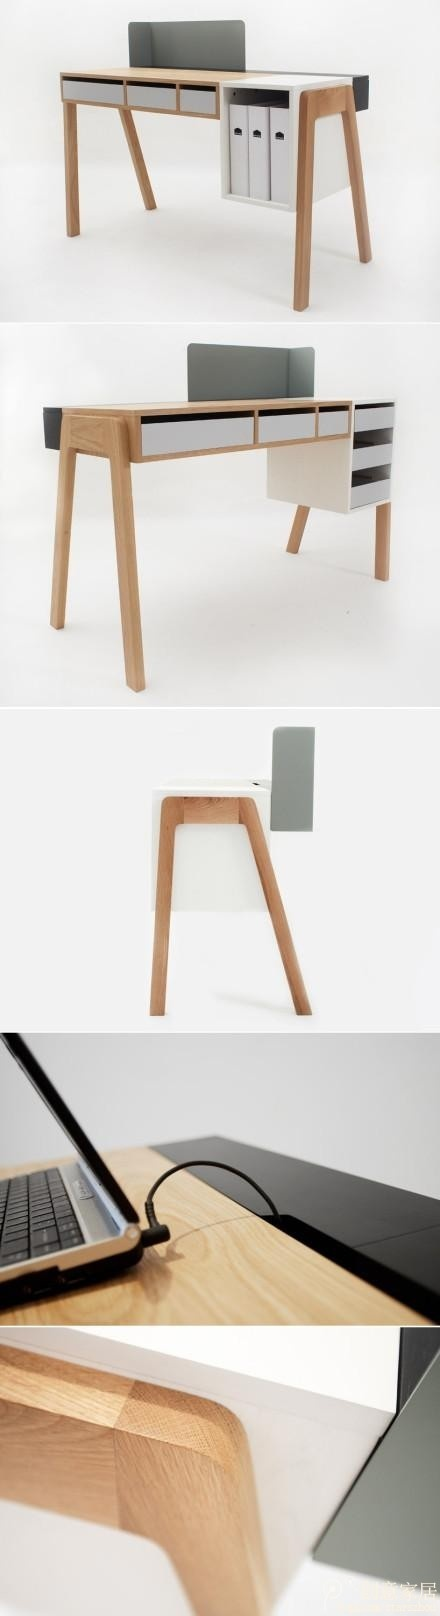 Letu0027s See This Multifunctional Table Designed By Reinhard Dienes For  Singapore Foundry Collection, Sleek And